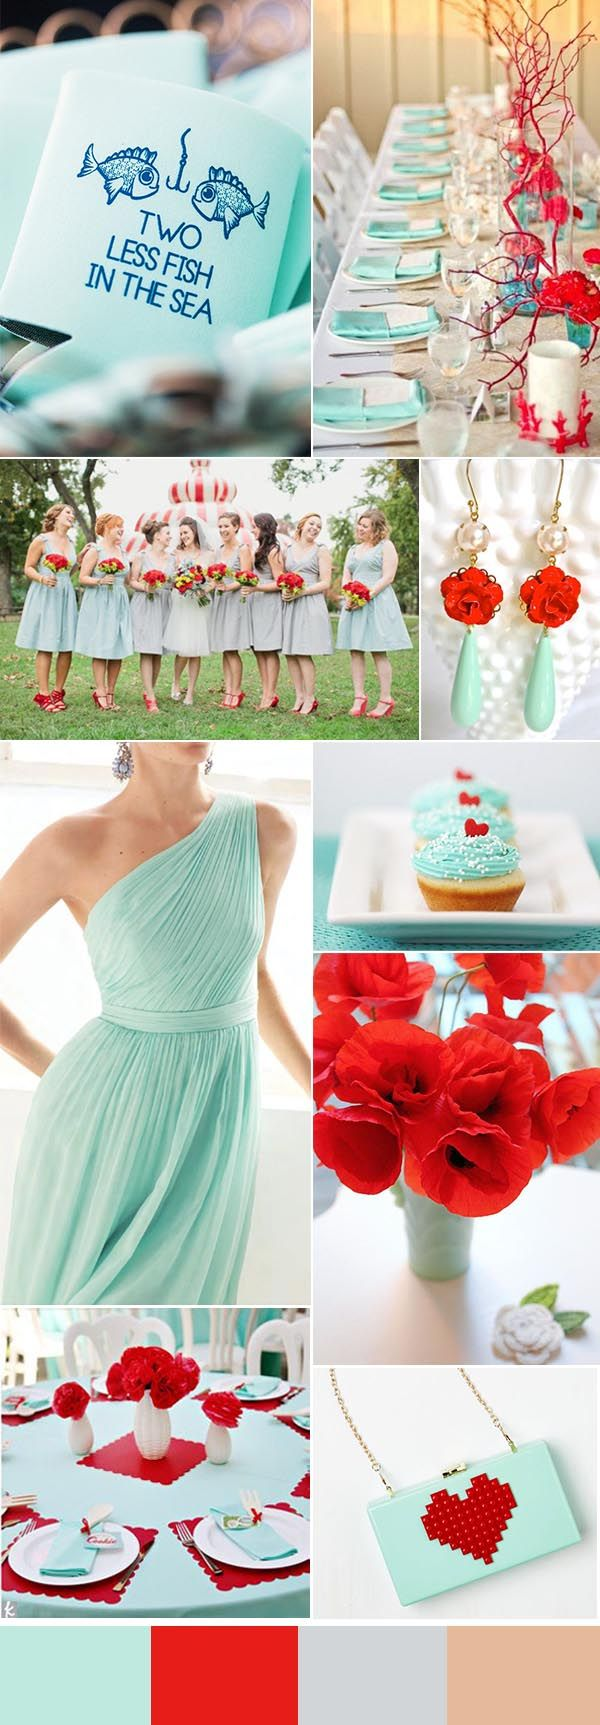 red and mint summer wedding ideas with summer wedding koozie favor